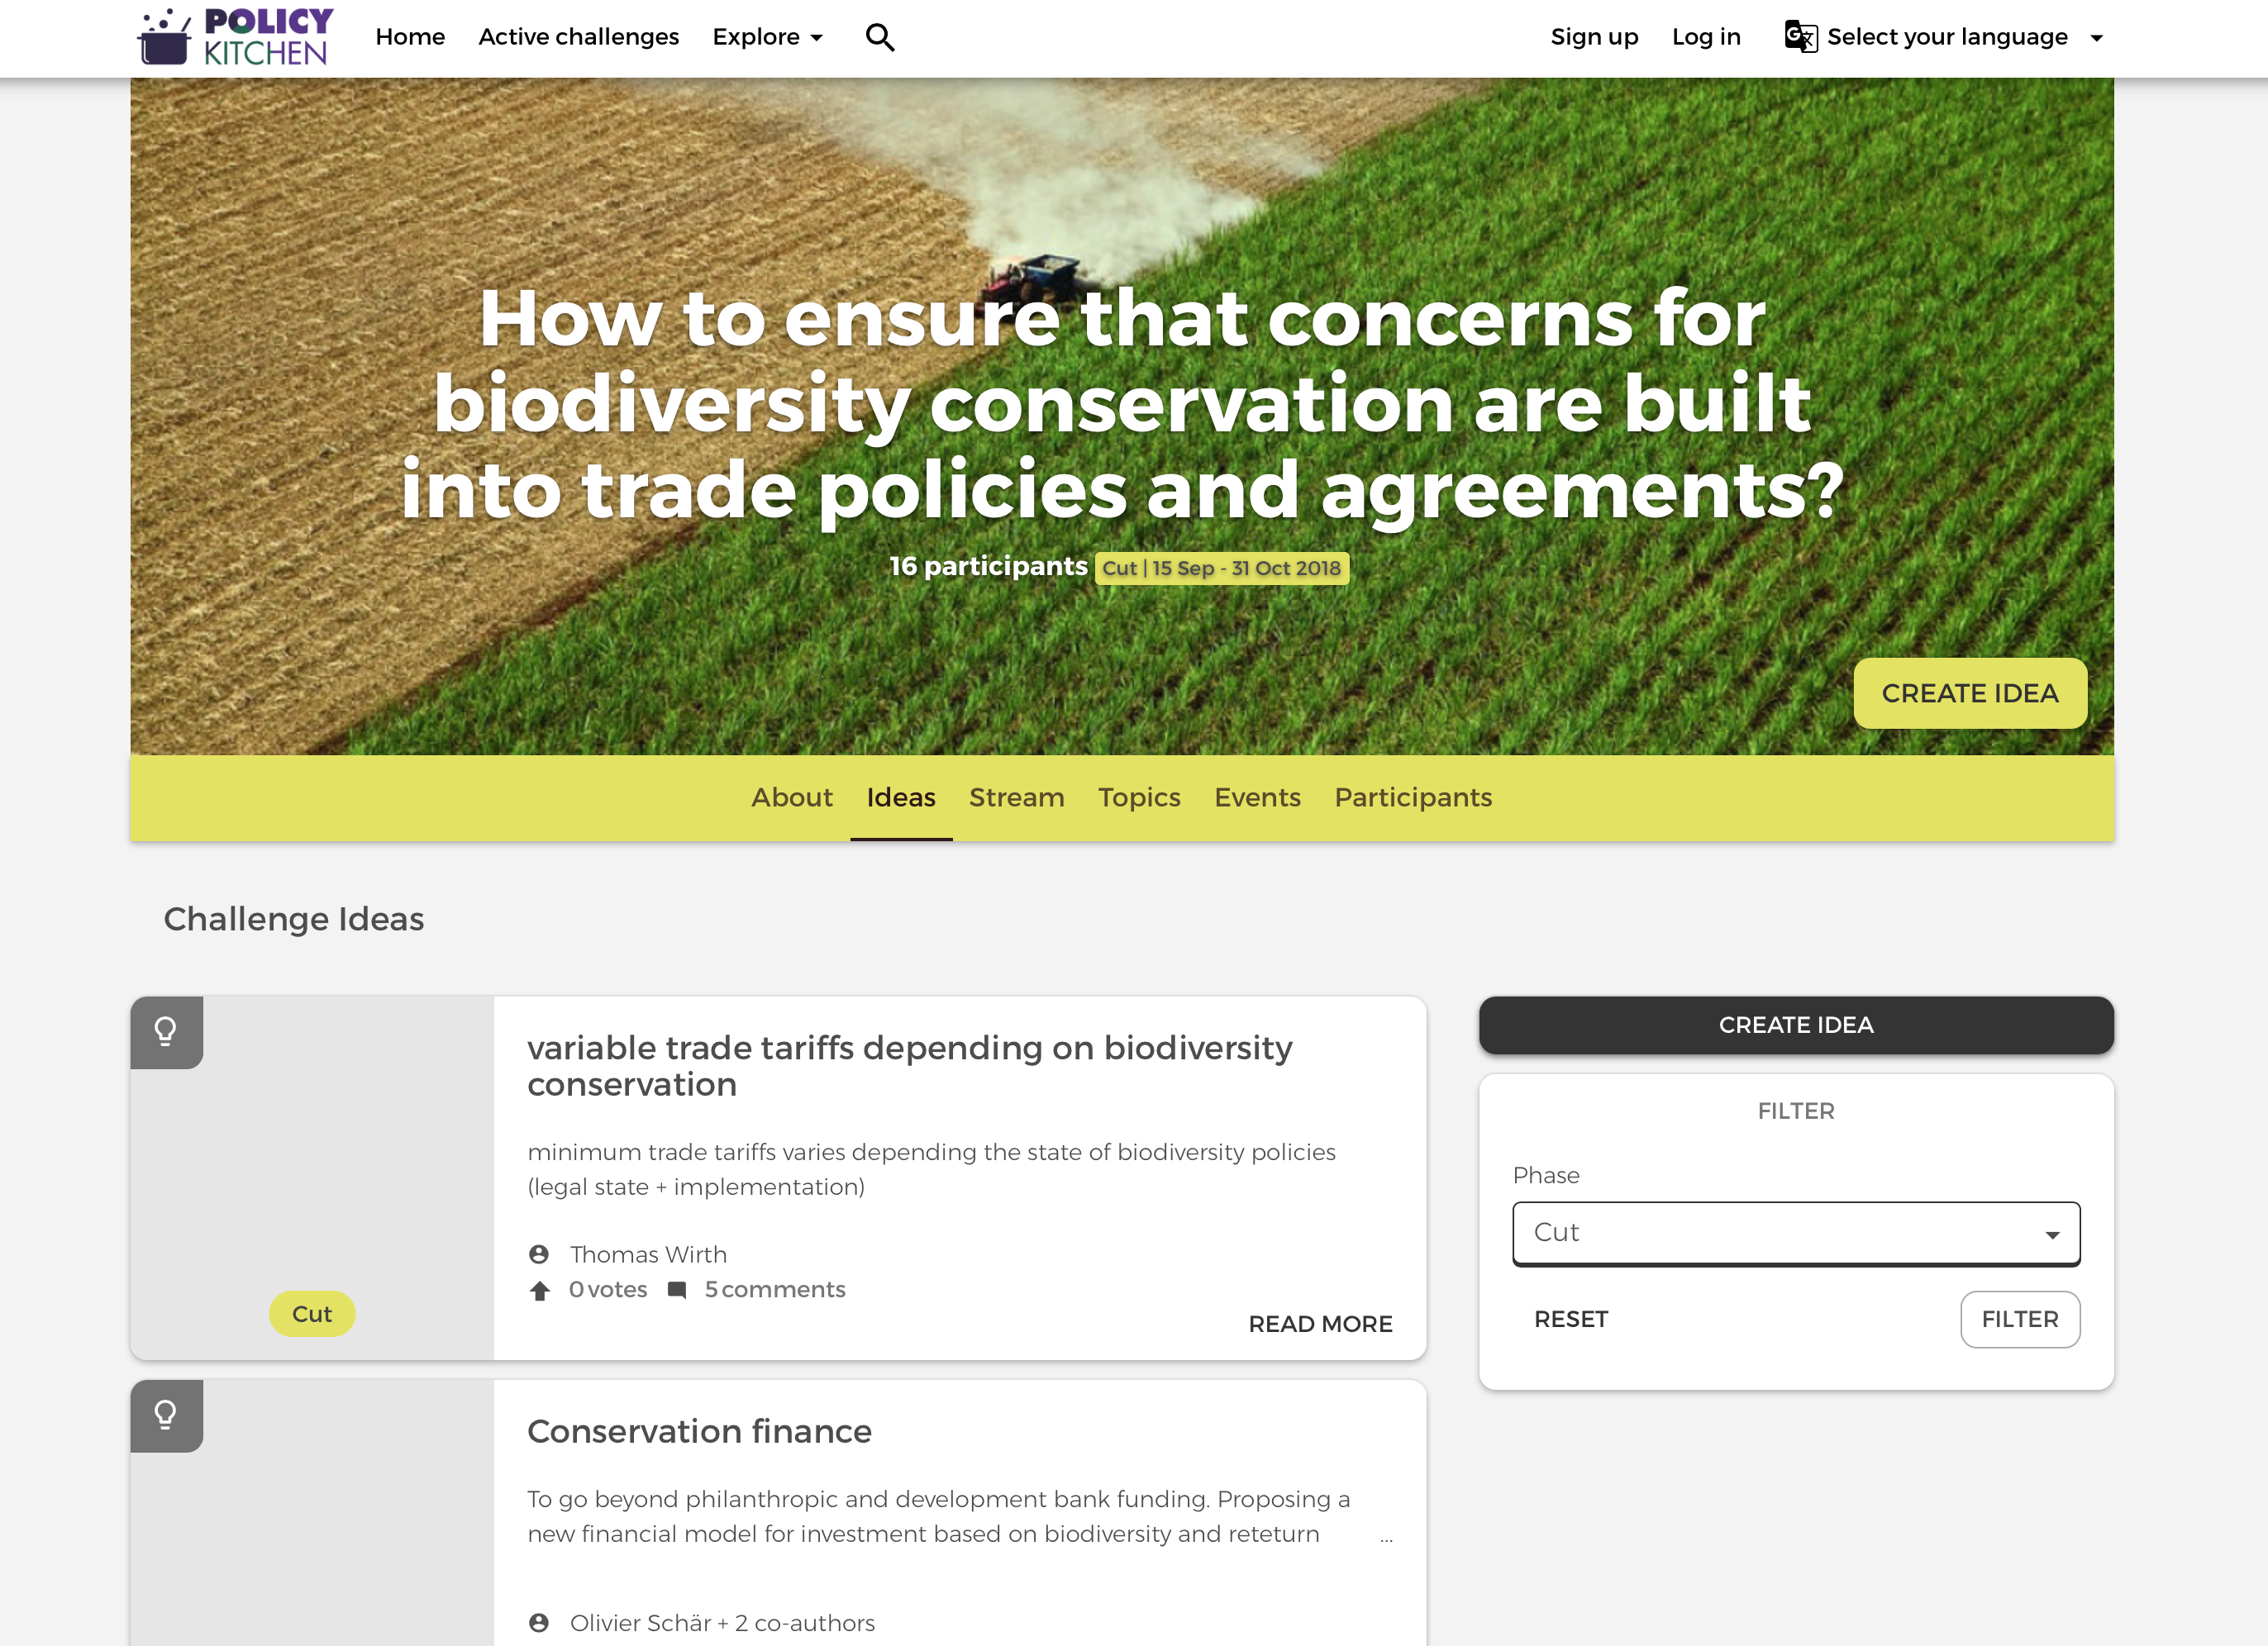 Digitalswitzerland Challenge Bet sees the light of day: Policy Kitchen is now live